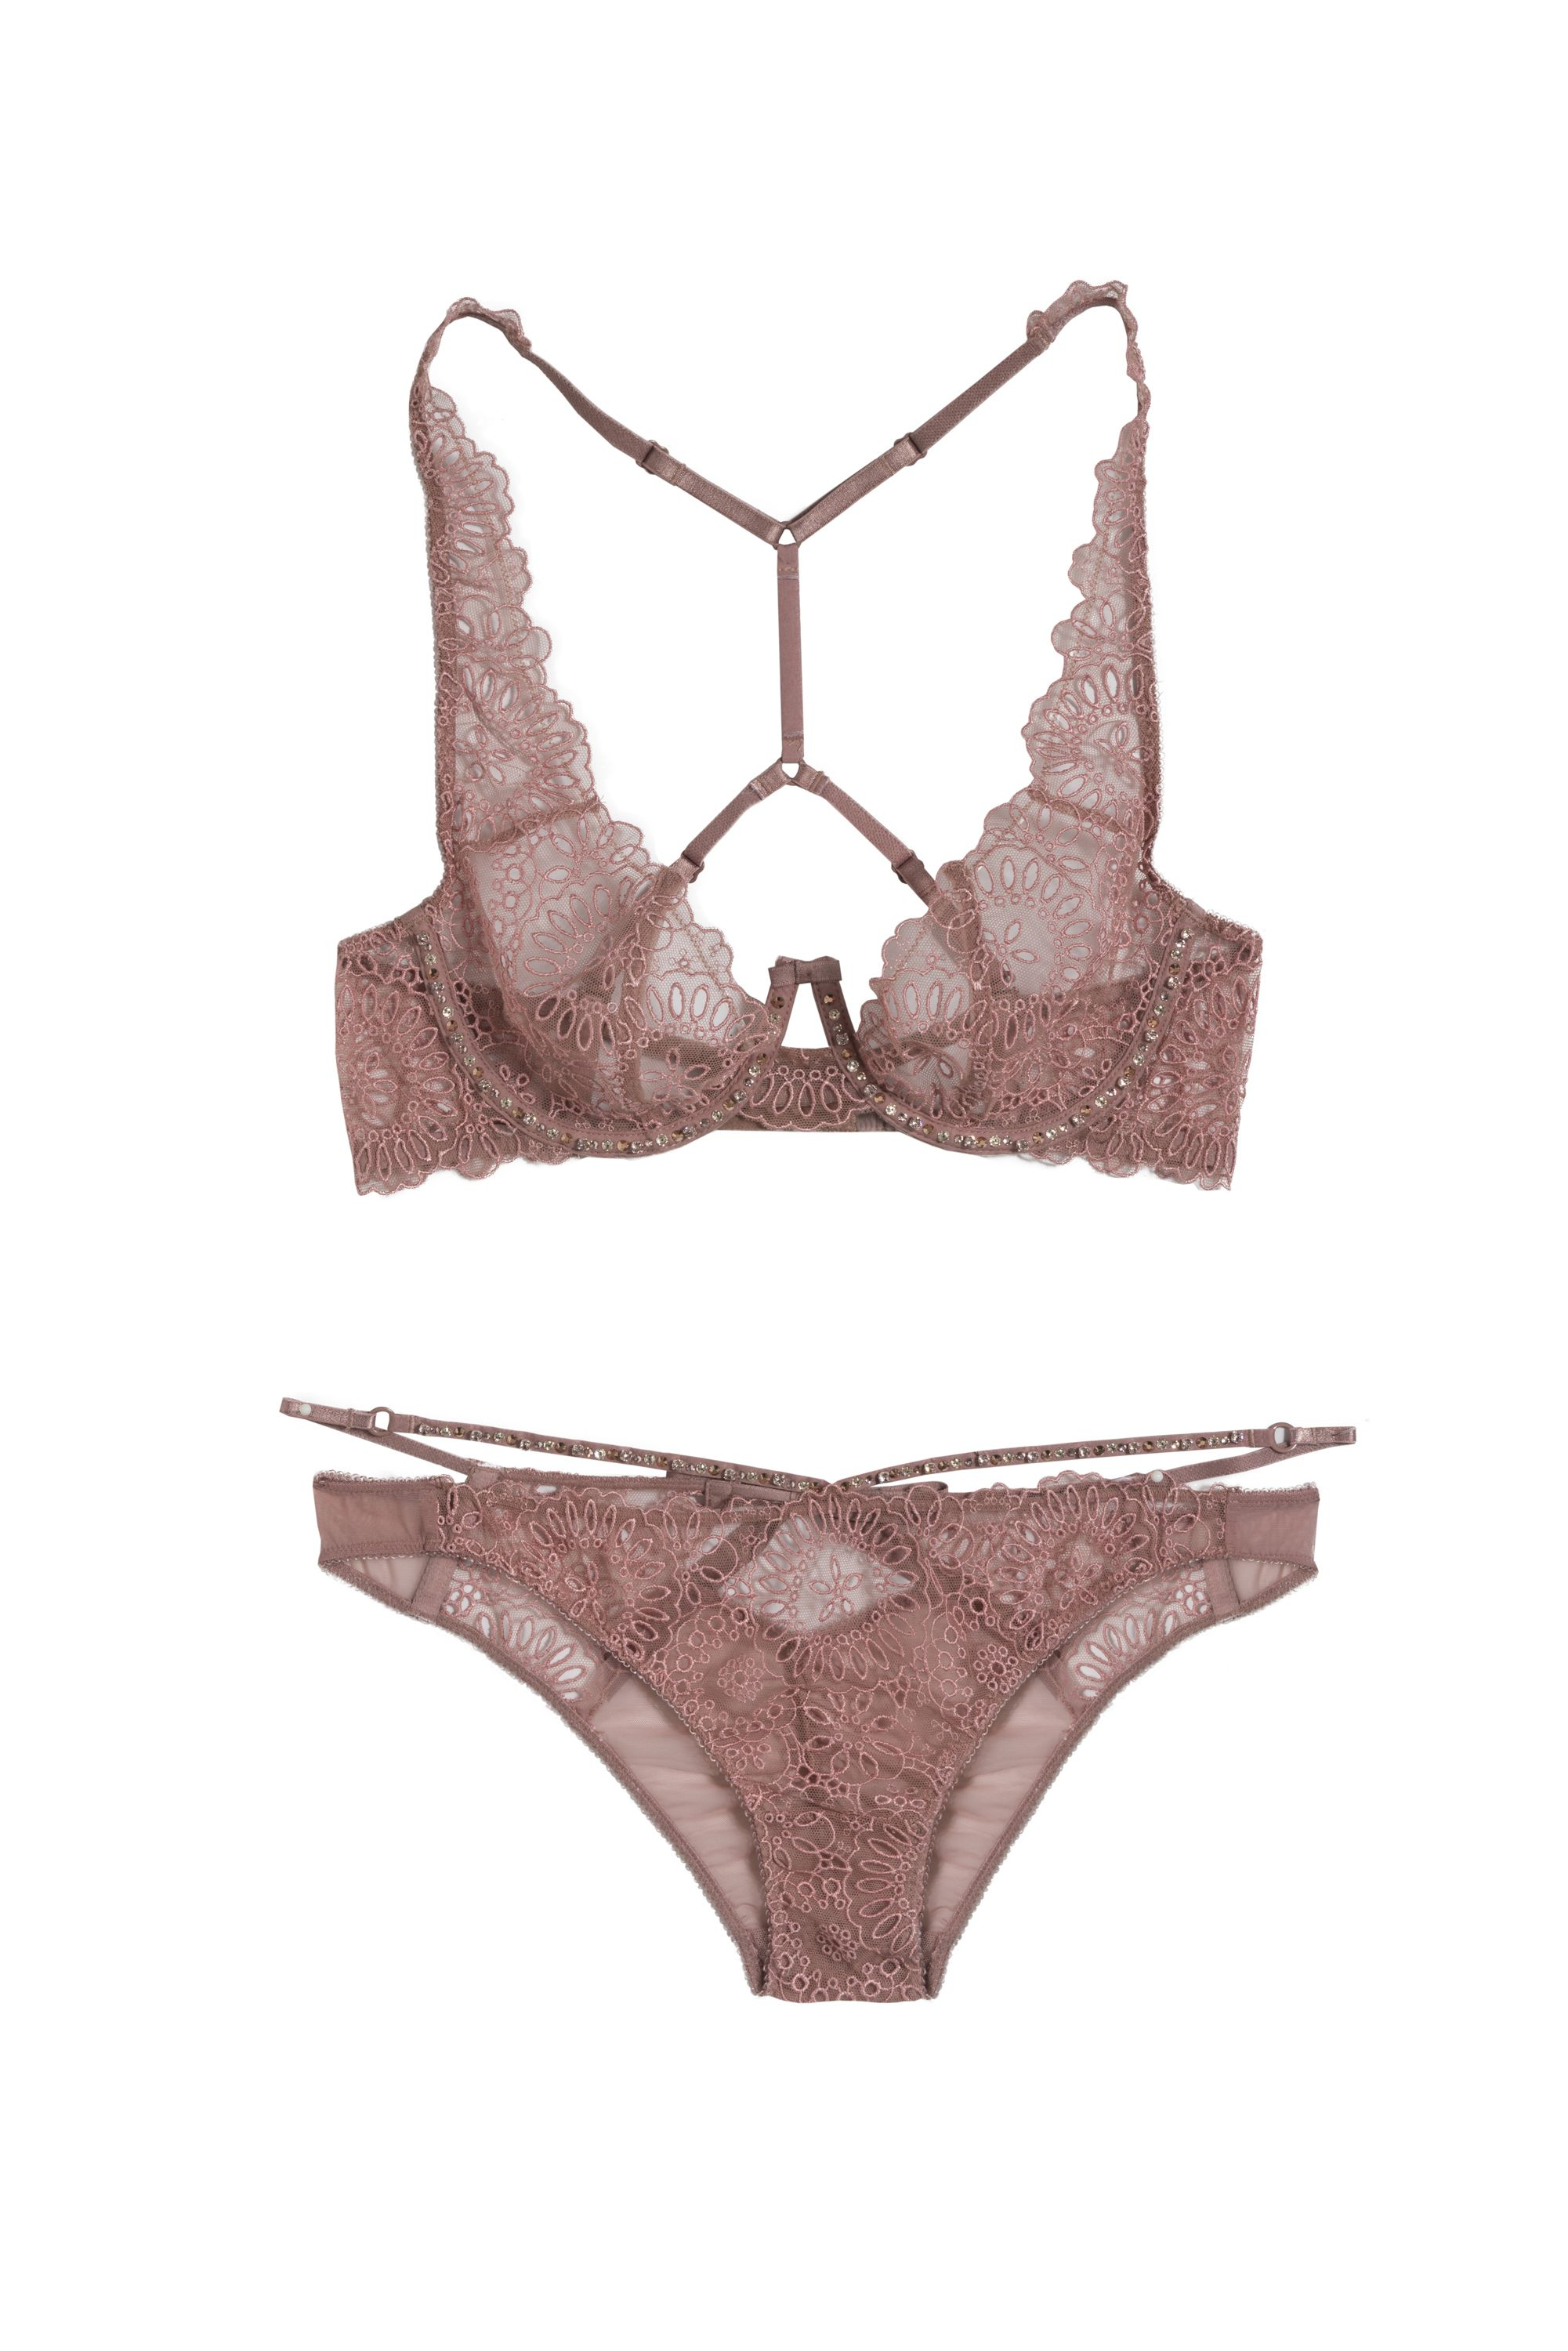 3c7f669f36da8 Victoria s Secret Designer Collection eyelet racerback bra and cheekini  with Swarovski crystals in the Crystal color and Crystal Rose Gold Metallic  effect.